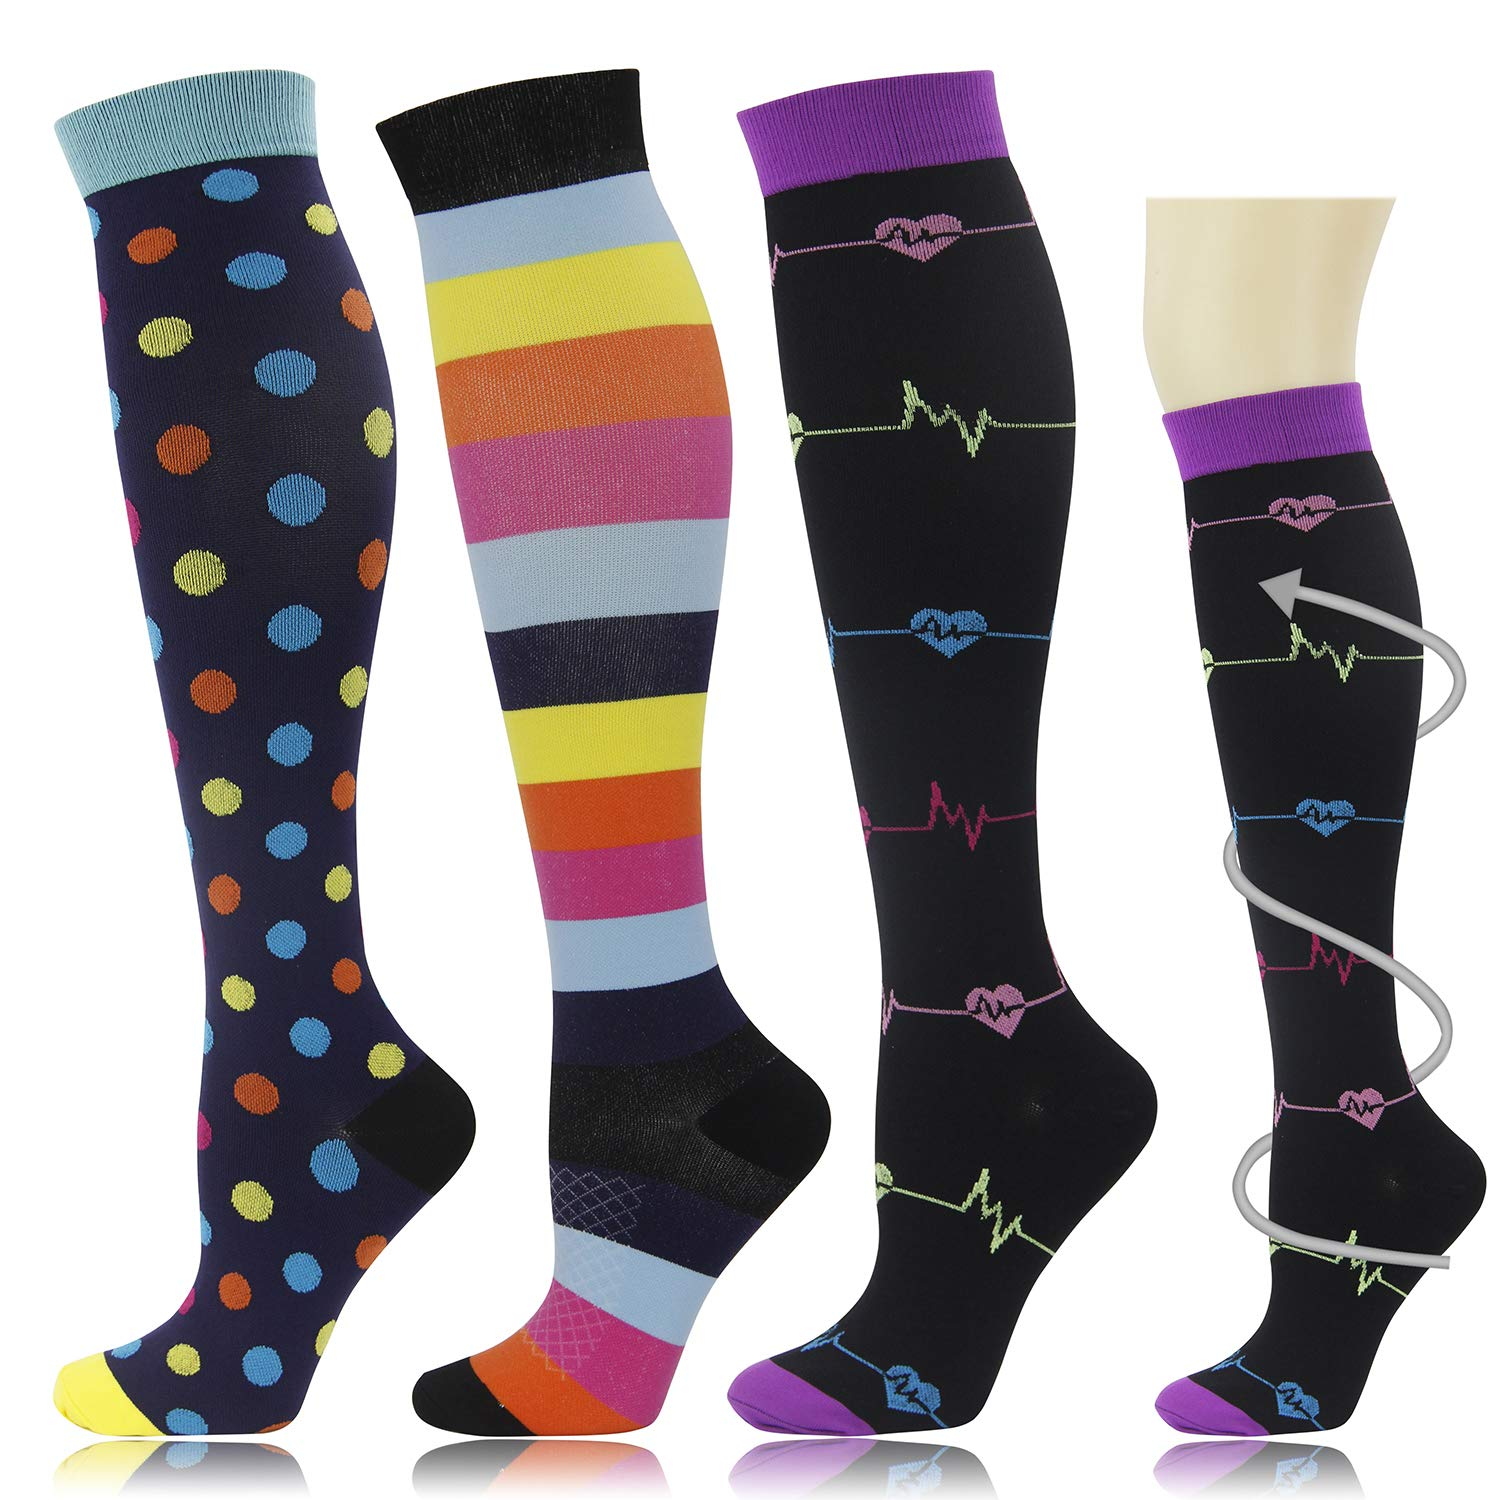 3 Pairs Graduated Medical Compression Socks for Women Men 20-30mmhg Knee High Fun Stockings for Running Sports Athletic Nurse Travel Pregnancy Swelling (S/M)